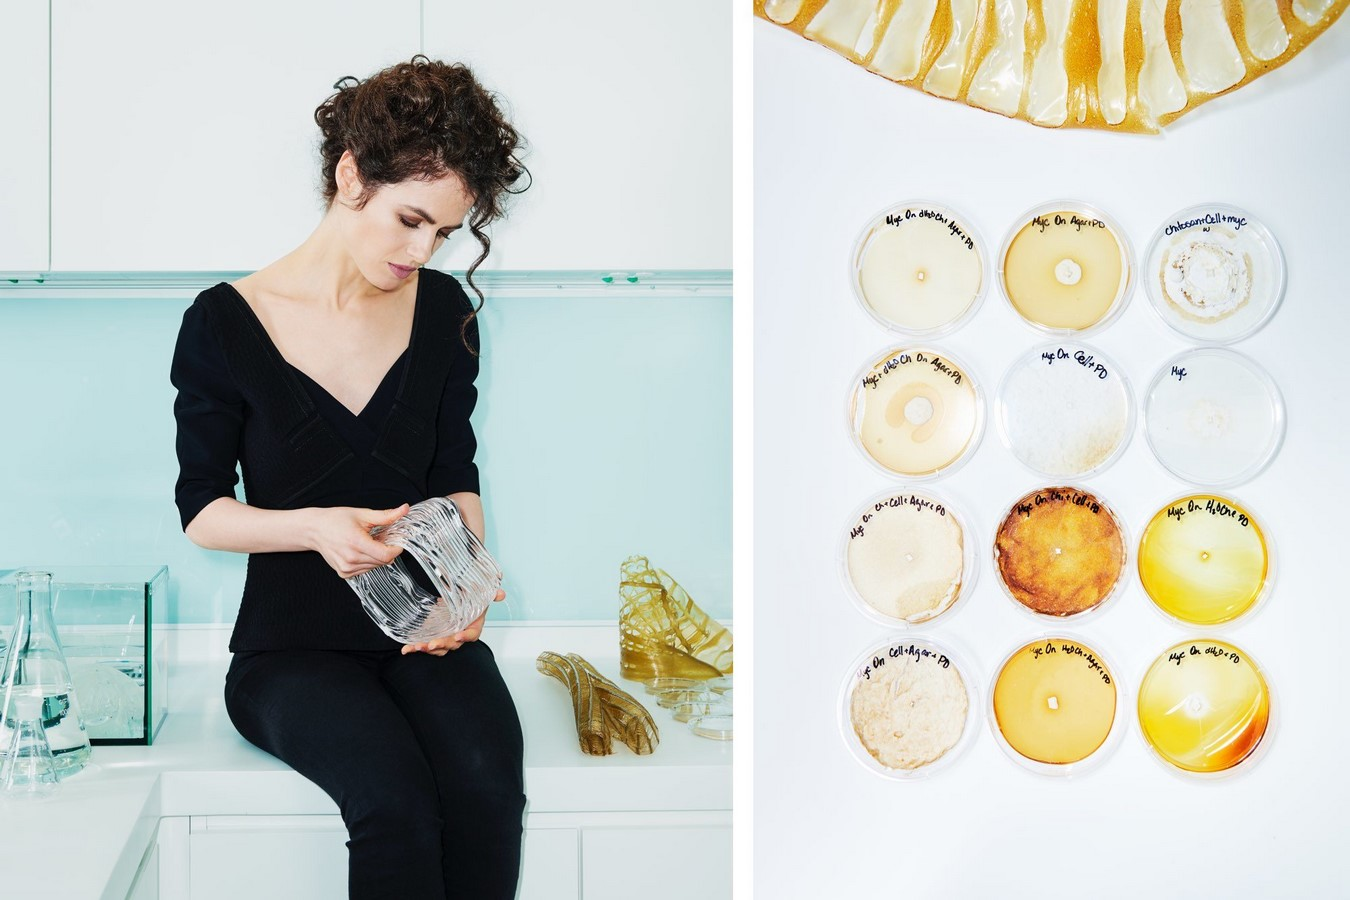 Neri Oxman and the Silkworms: Collaboration with Nature - Sheet2